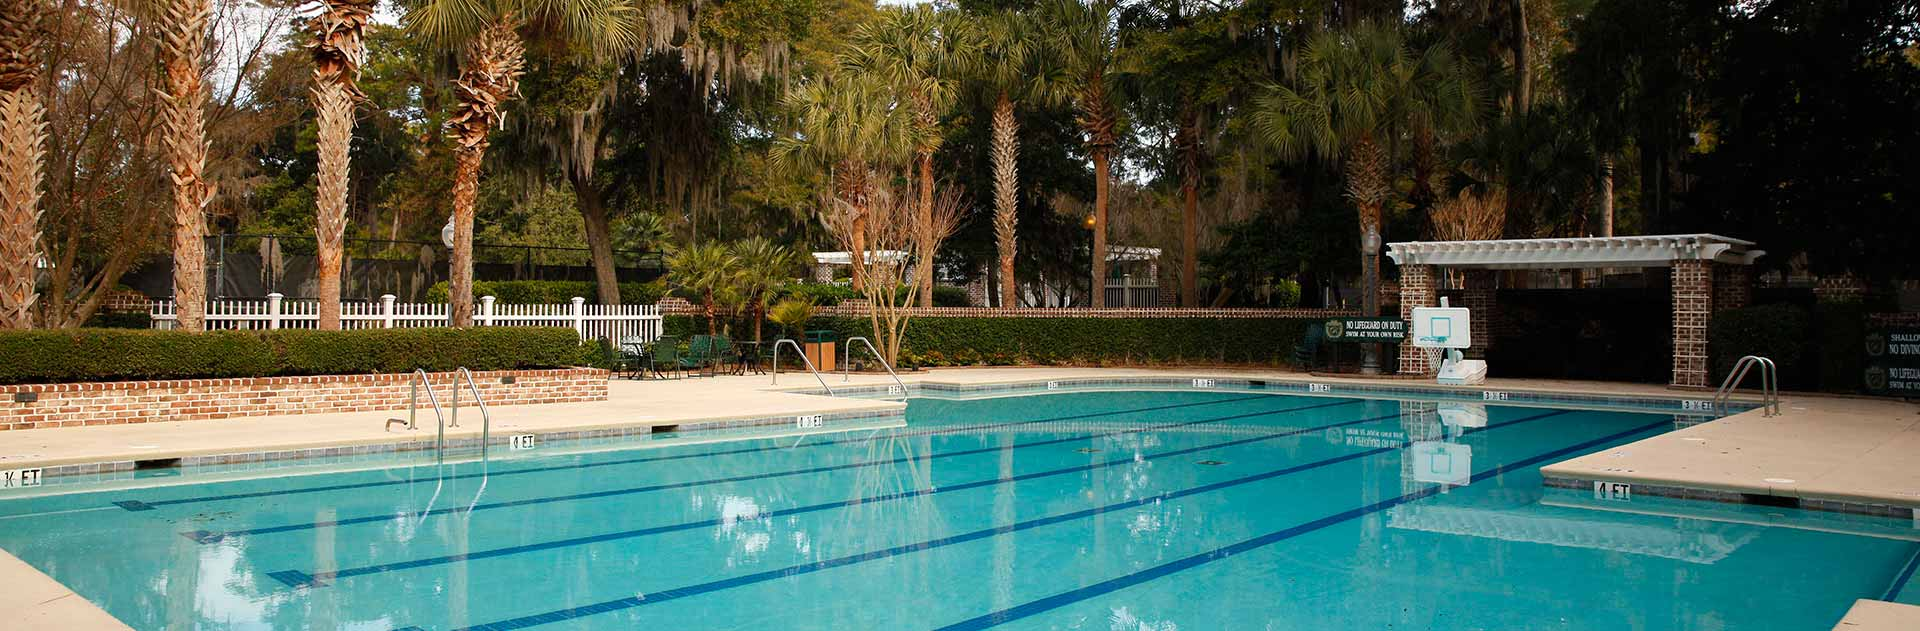 Colleton River Plantation Pool Areas